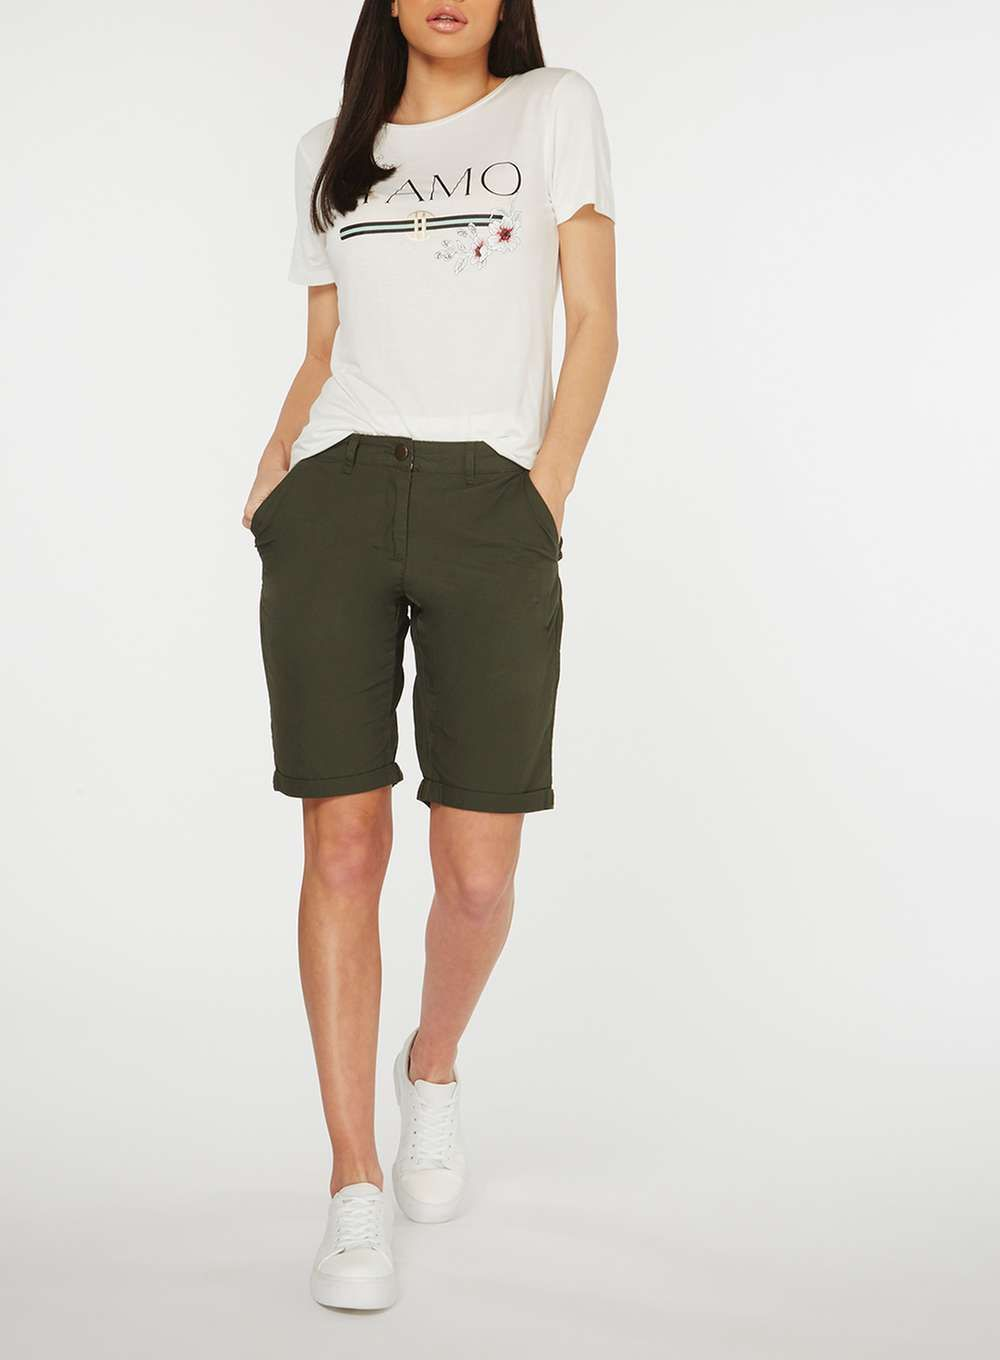 White and khaki colour outfit, you must try with bermuda shorts, trousers, shorts